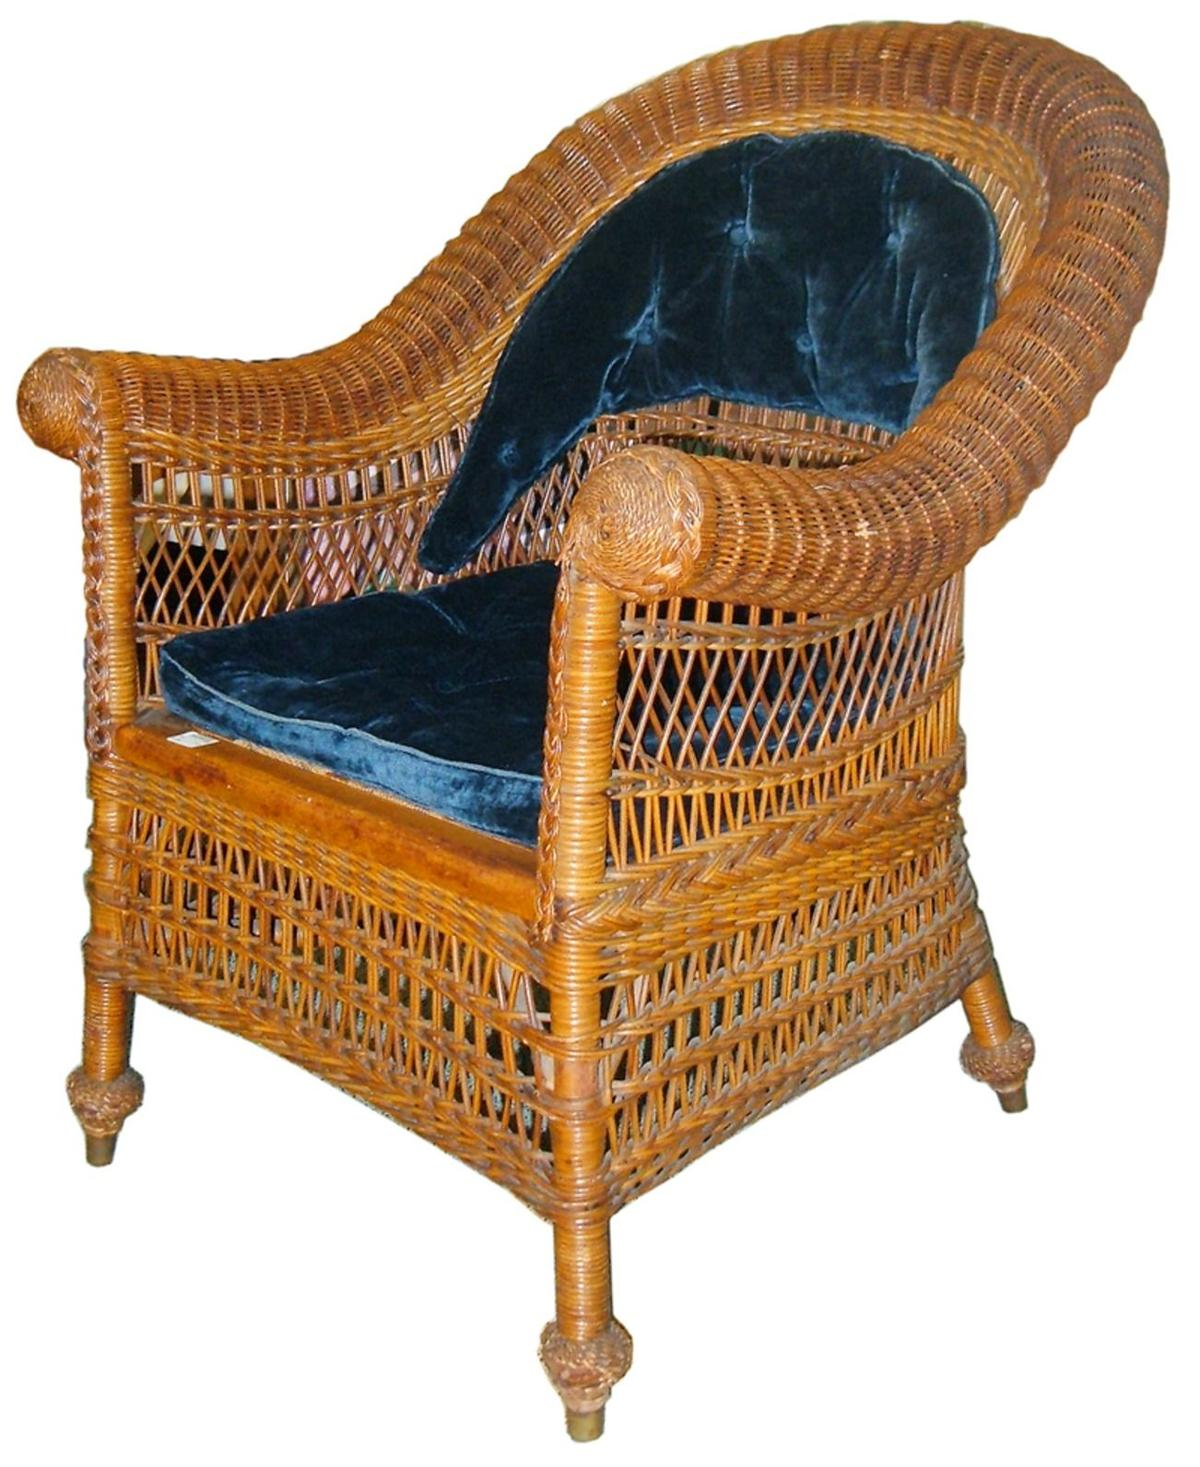 Antique Rocking Chair Identification - Jean mcclelland antique wicker can be identified by their wood frames